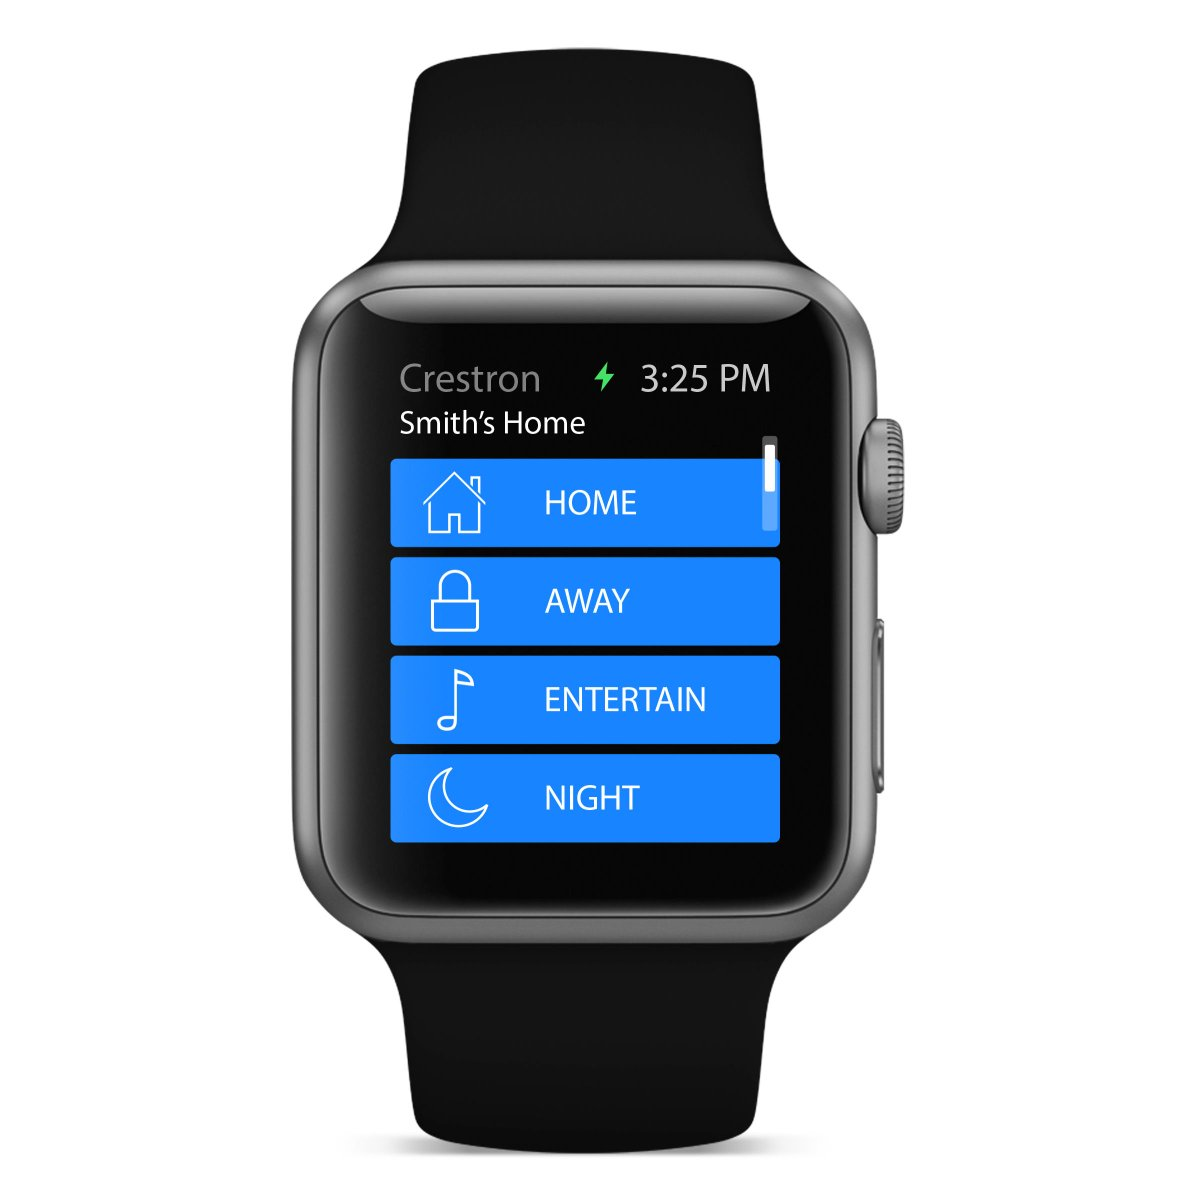 The Crestron app for Apple Watch is coming soon... http://t.co/w7XBUVix9G http://t.co/QDOssFecak